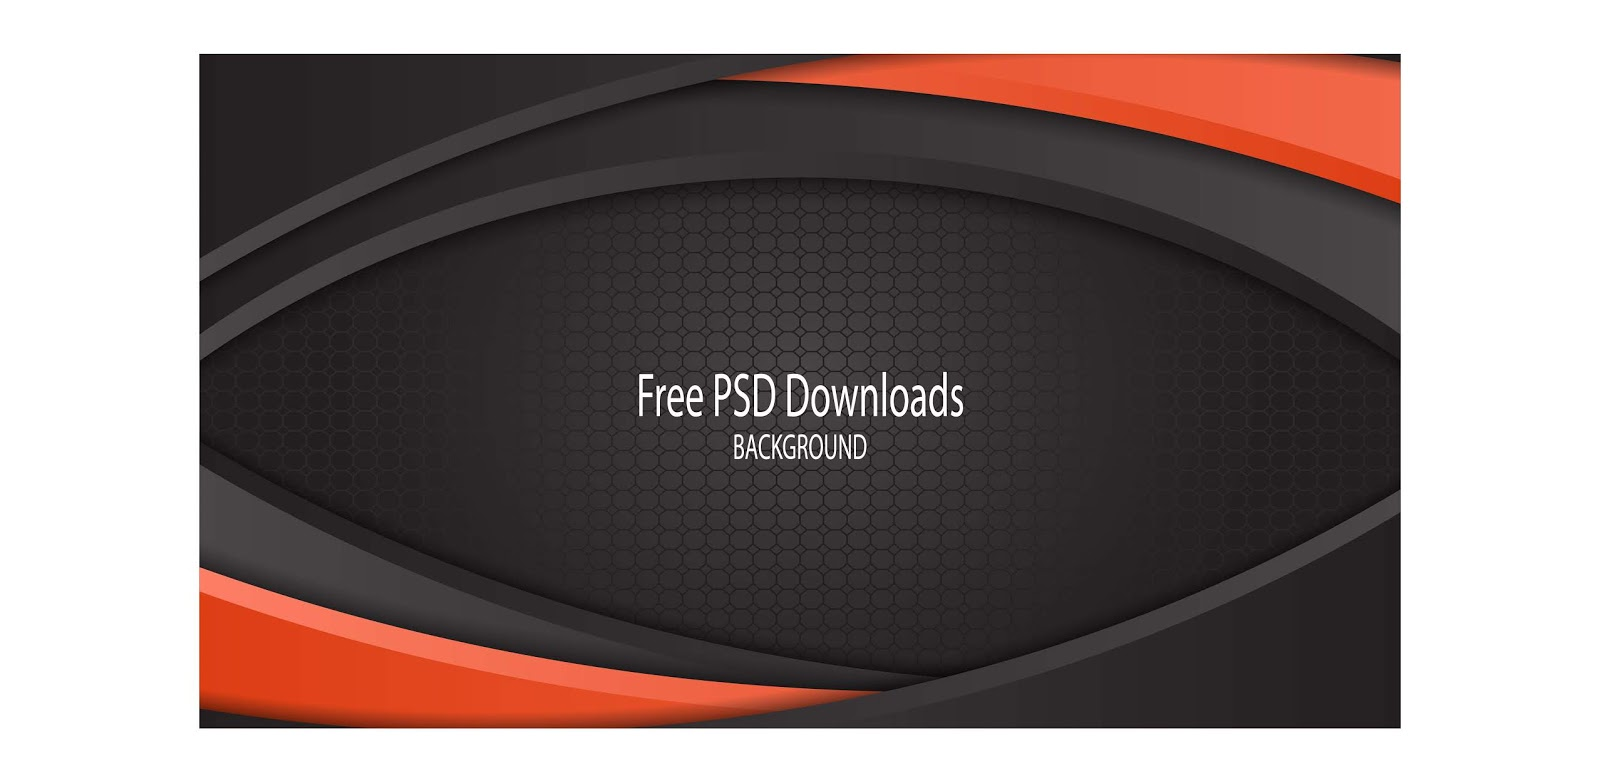 Abstract background with black texture Free PSD Downloads - Get PC